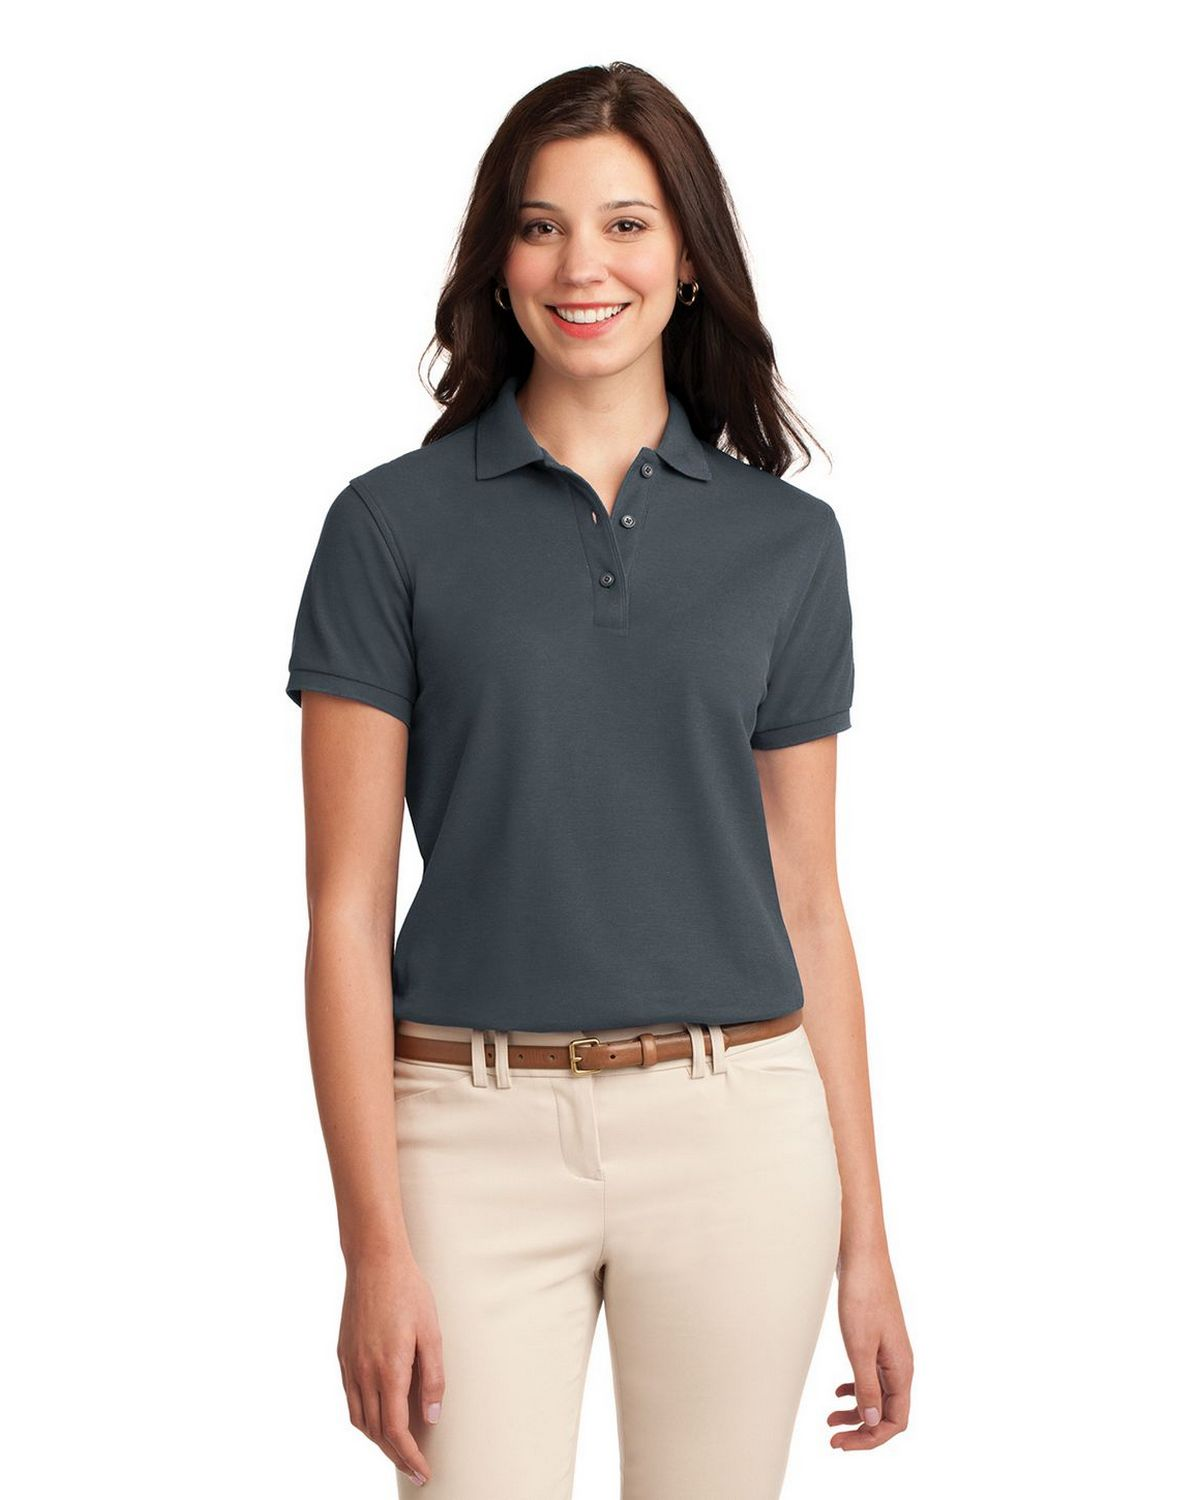 Port Authority L500 Women's Silk Touch Polo - Steel Grey - XS #silk